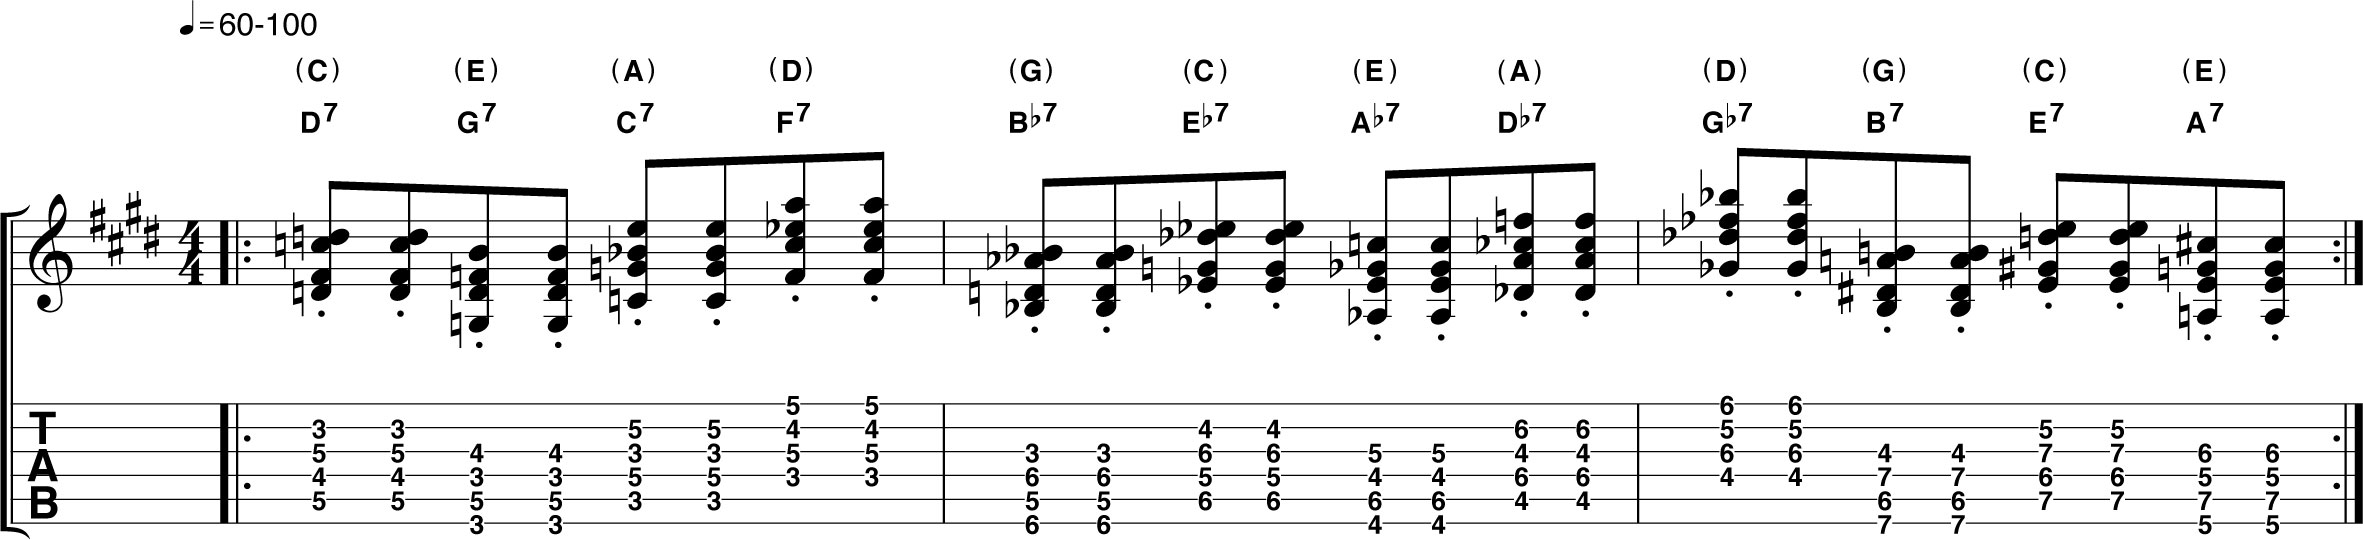 How To Learn Guitar Chords Across The Fretboard Quickly And Easily